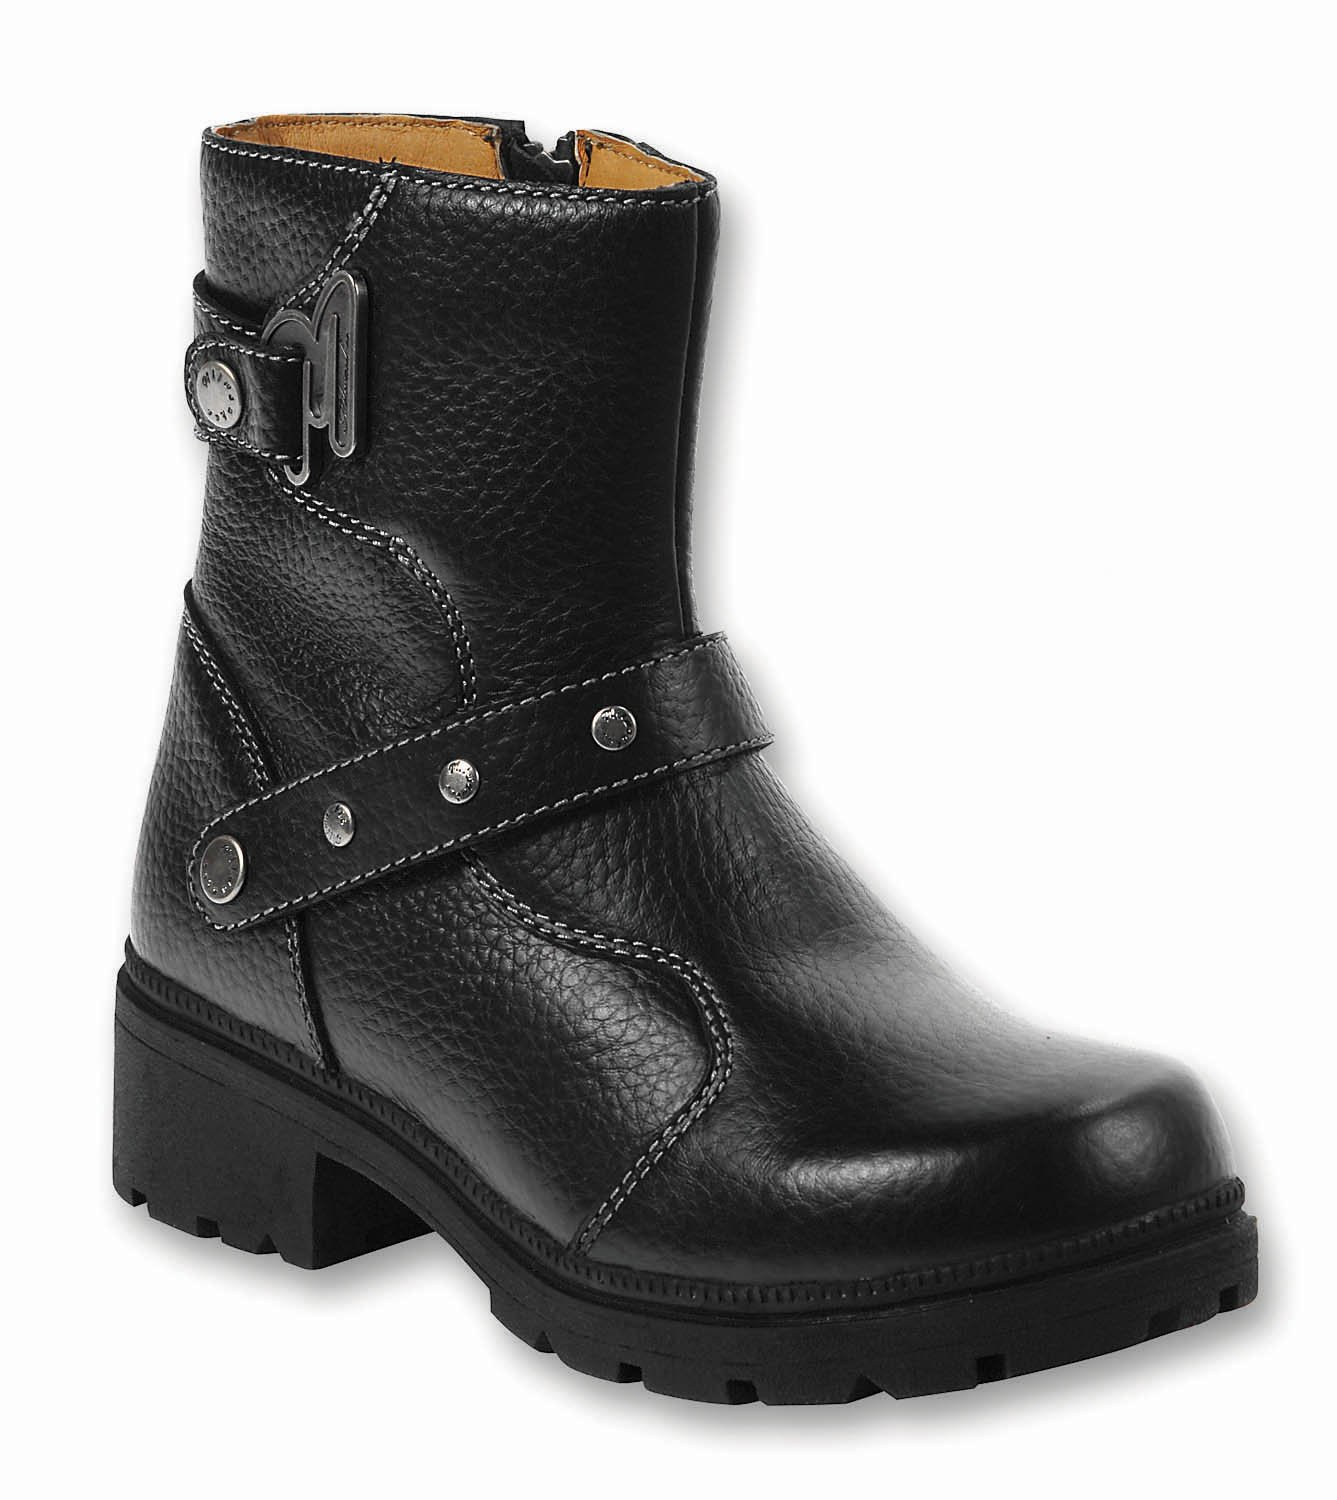 Milwaukee Motorcycle Clothing Company Womens Delusion Boots (Black, Size 6)